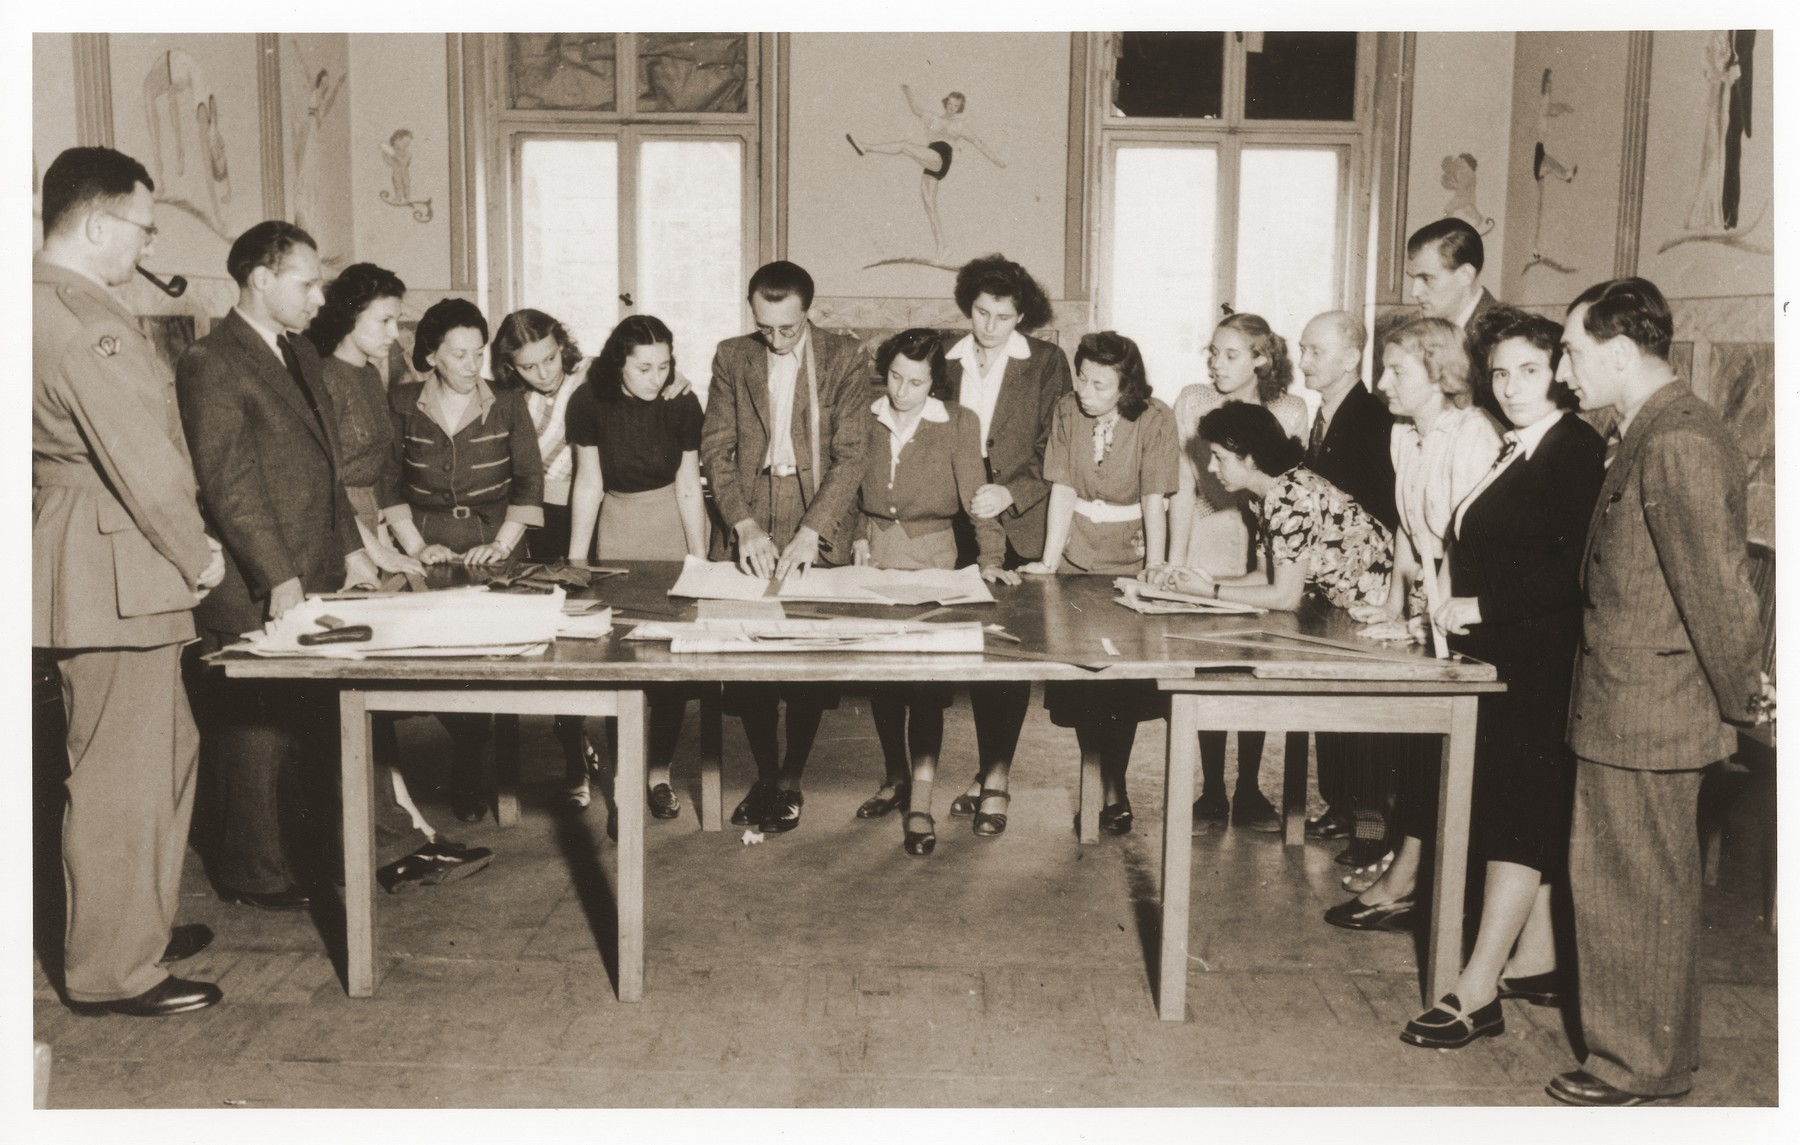 Dorthea and Gertrude Isaacsohn attend a dressmaking class at the ORT school in Berlin.  Dorthea and Gertrude are pictured third and fourth from the left.